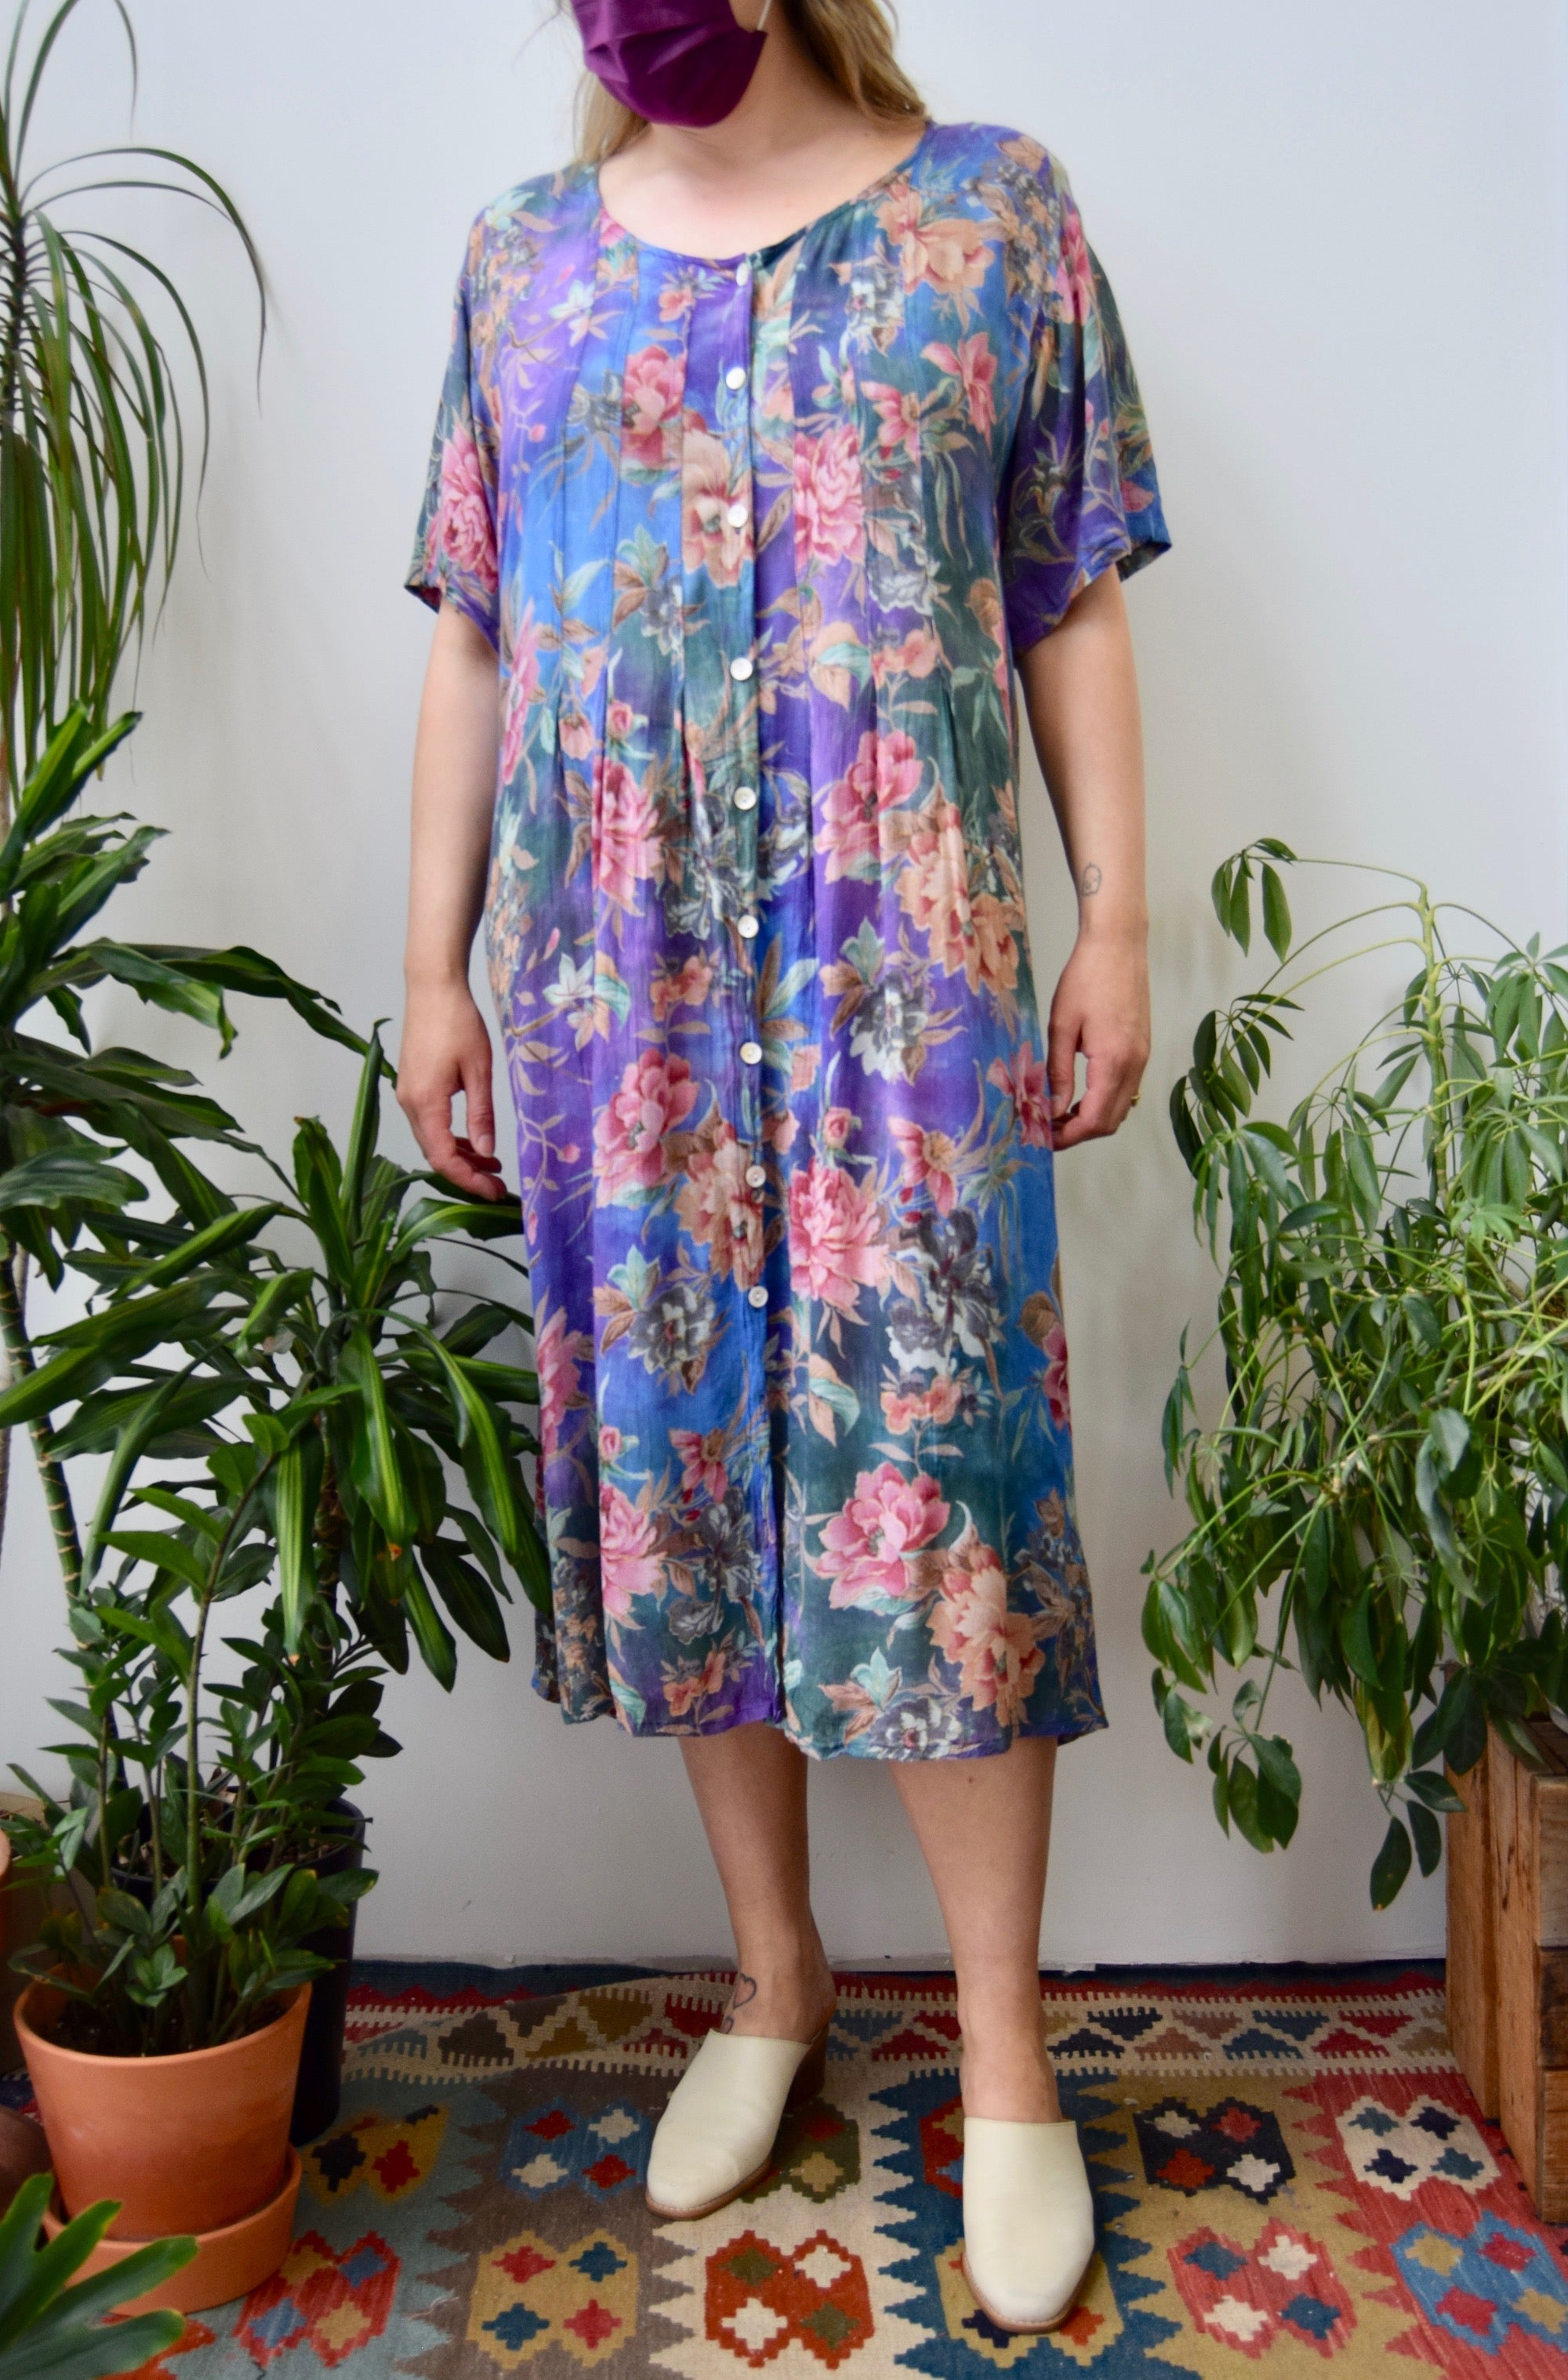 Florida Mom Rayon Dress